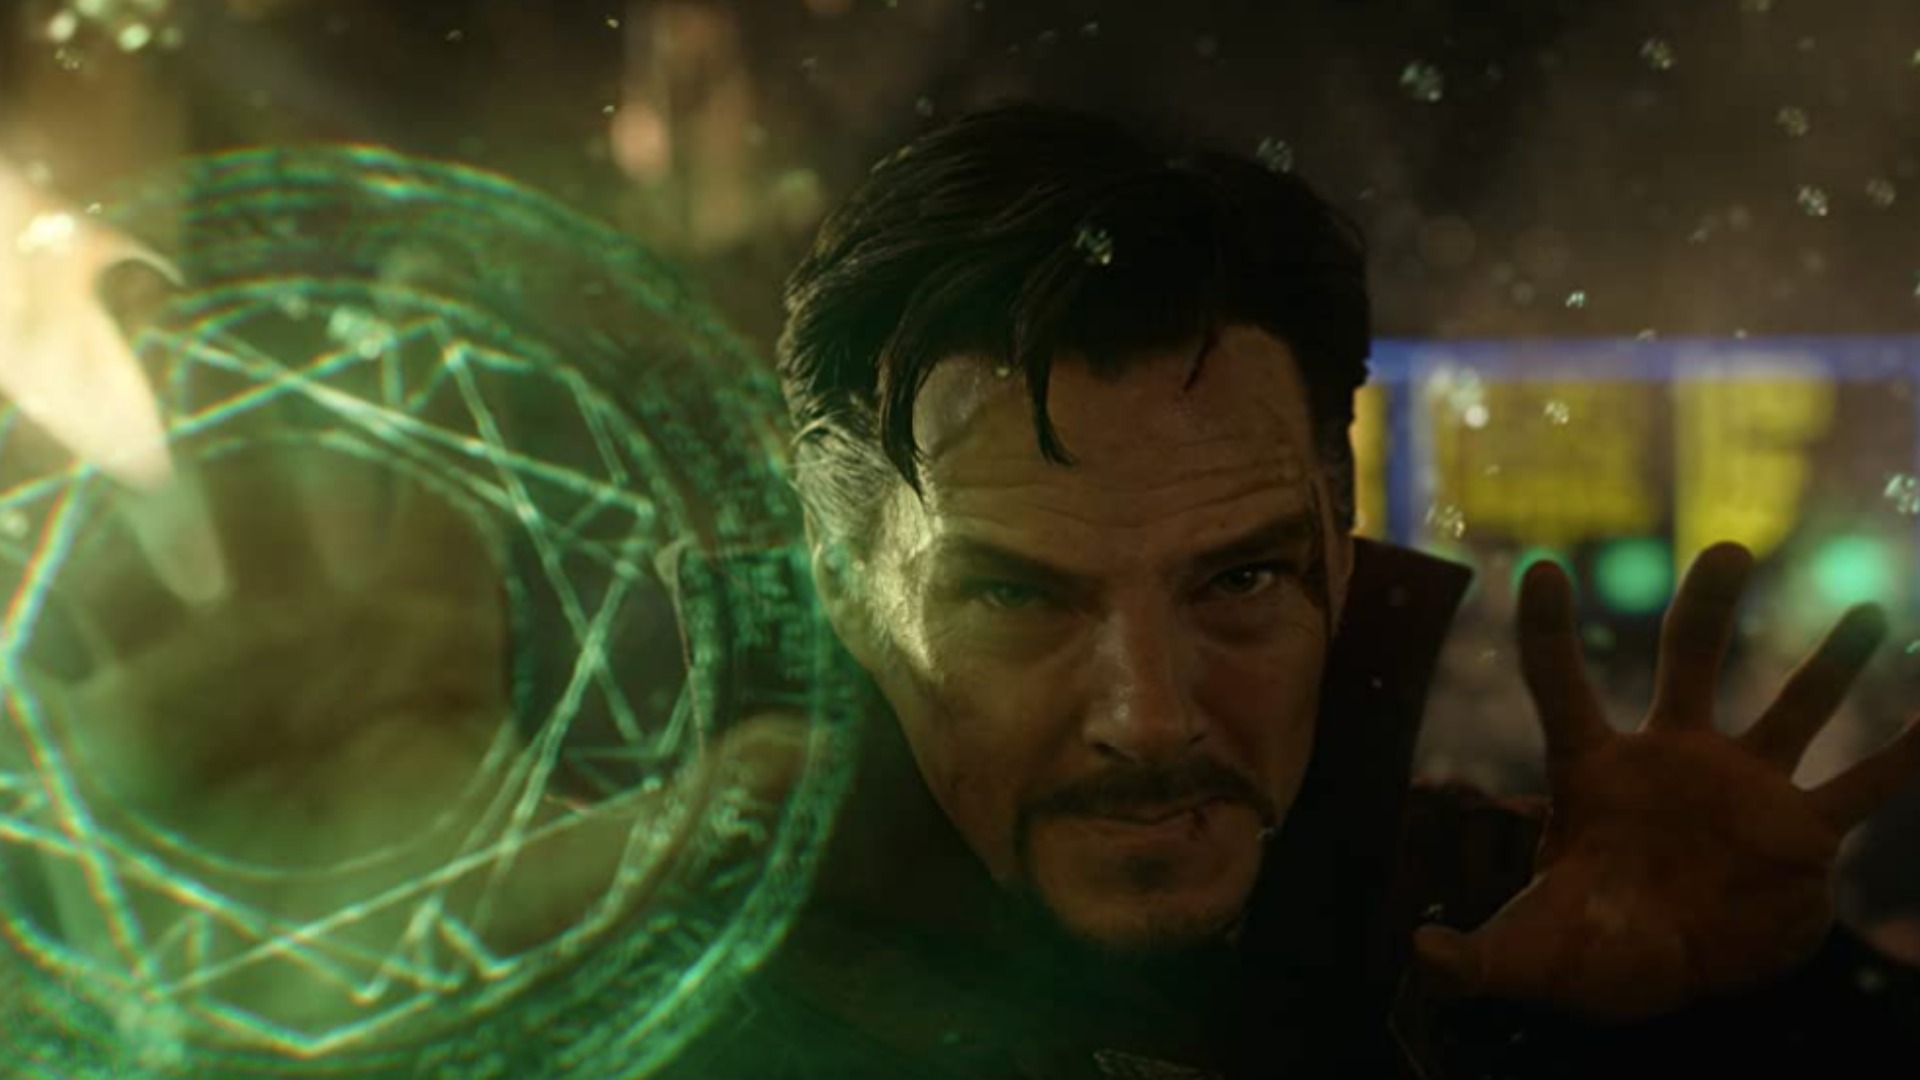 MCU multiverse connections will appear before and after Doctor Strange 2, says Kevin Feige